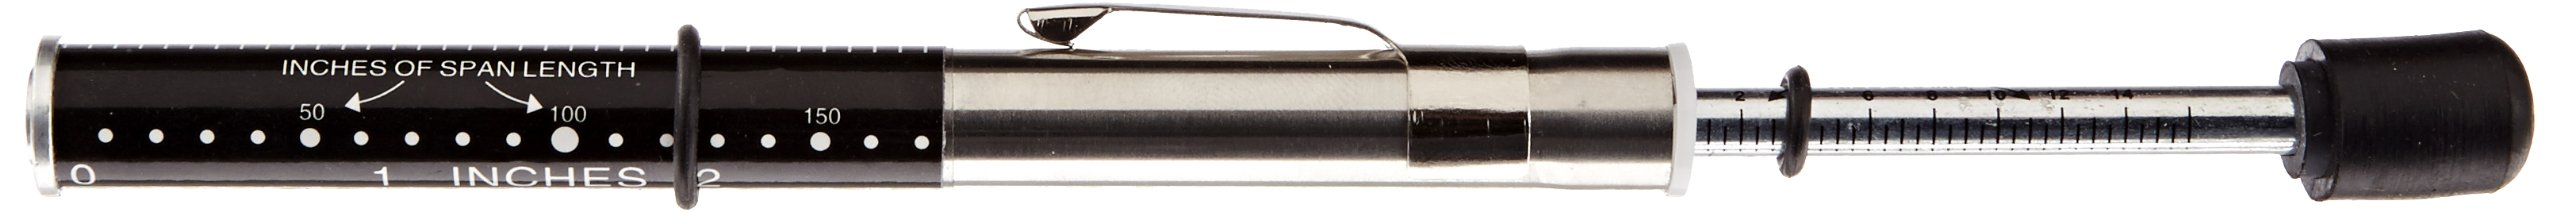 Gates 7401-0076 Pencil Type Tension Tester, 30 lbs Deflection Force